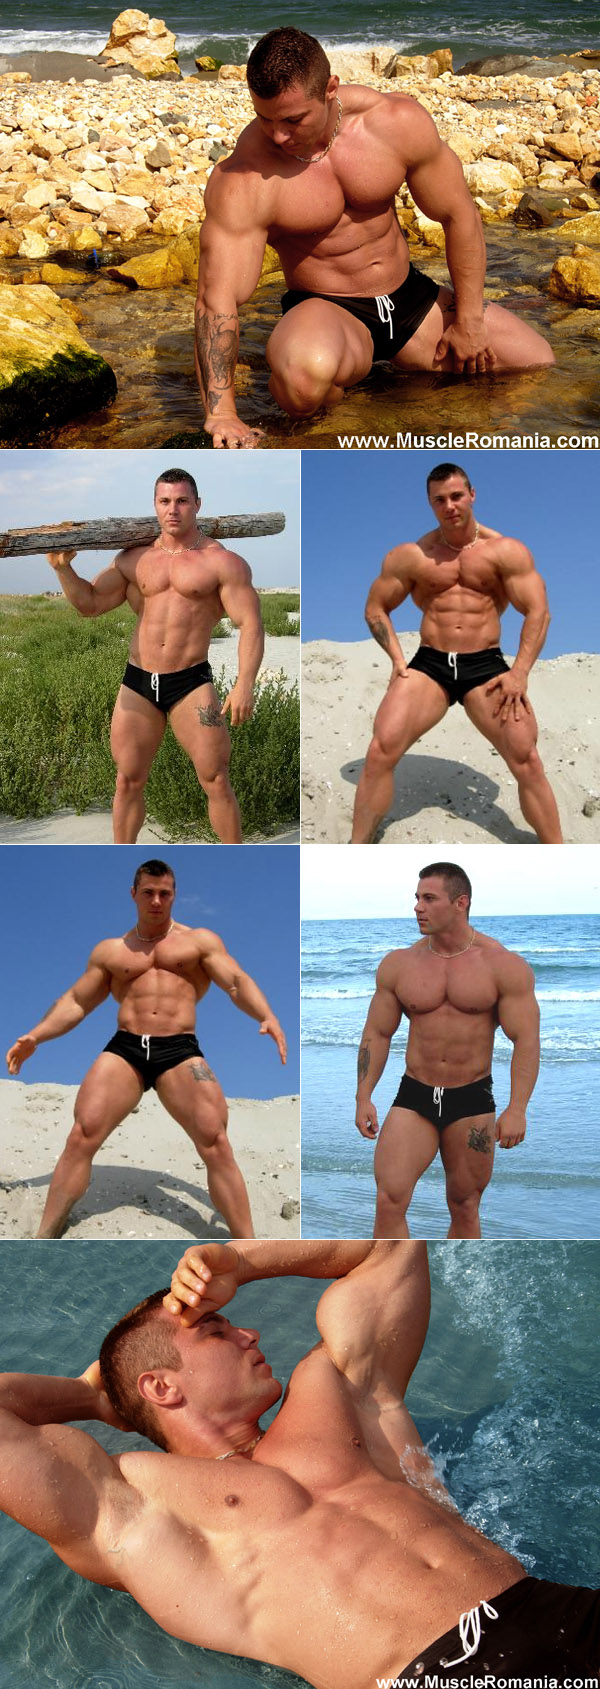 Muscle man at the beach